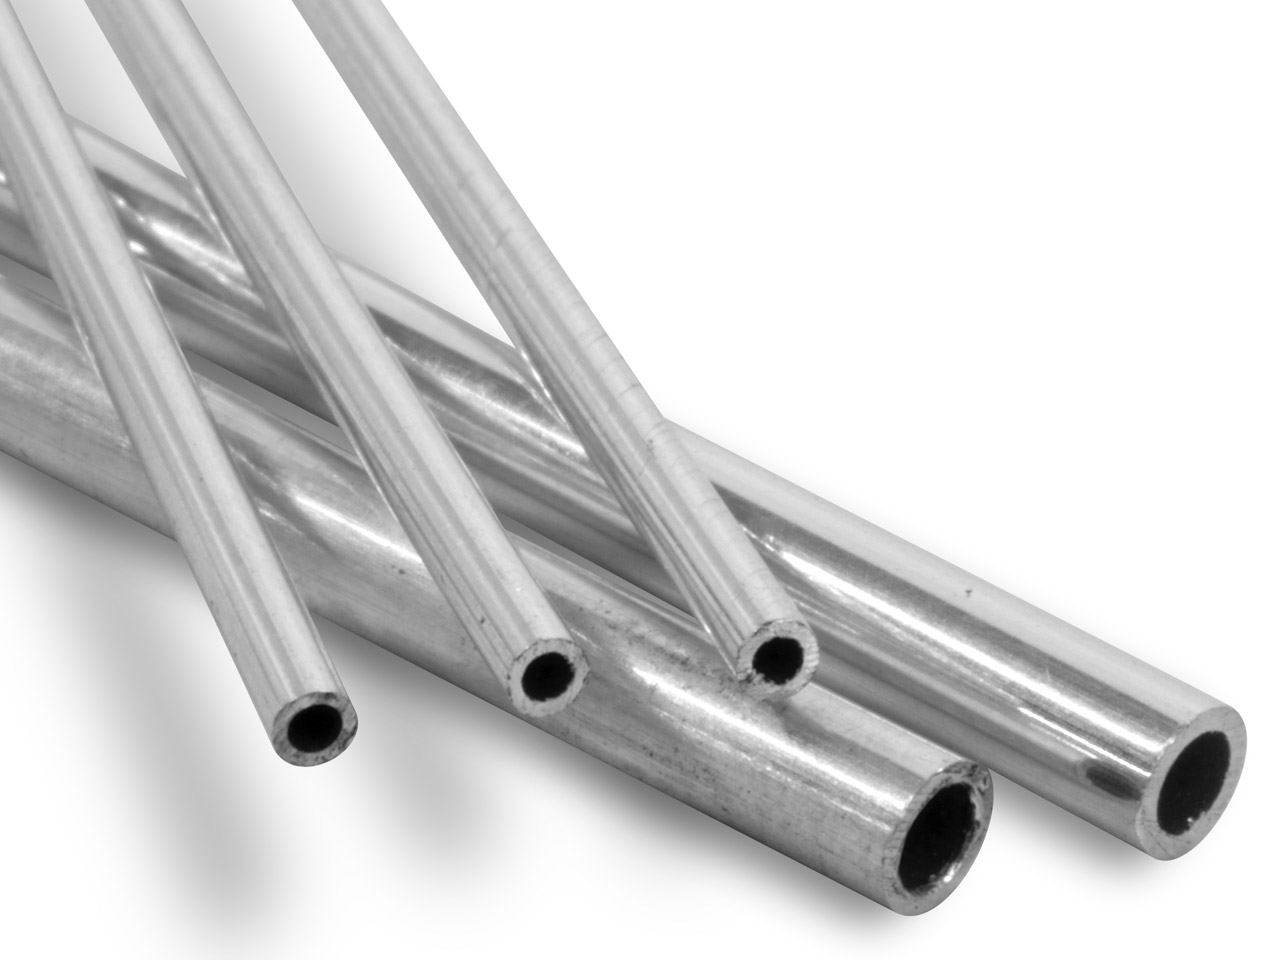 Sterling Silver Tube, Ref 4,       Outside Diameter 3.5mm,            Inside Diameter 2.6mm, 0.45mm Wall Thickness